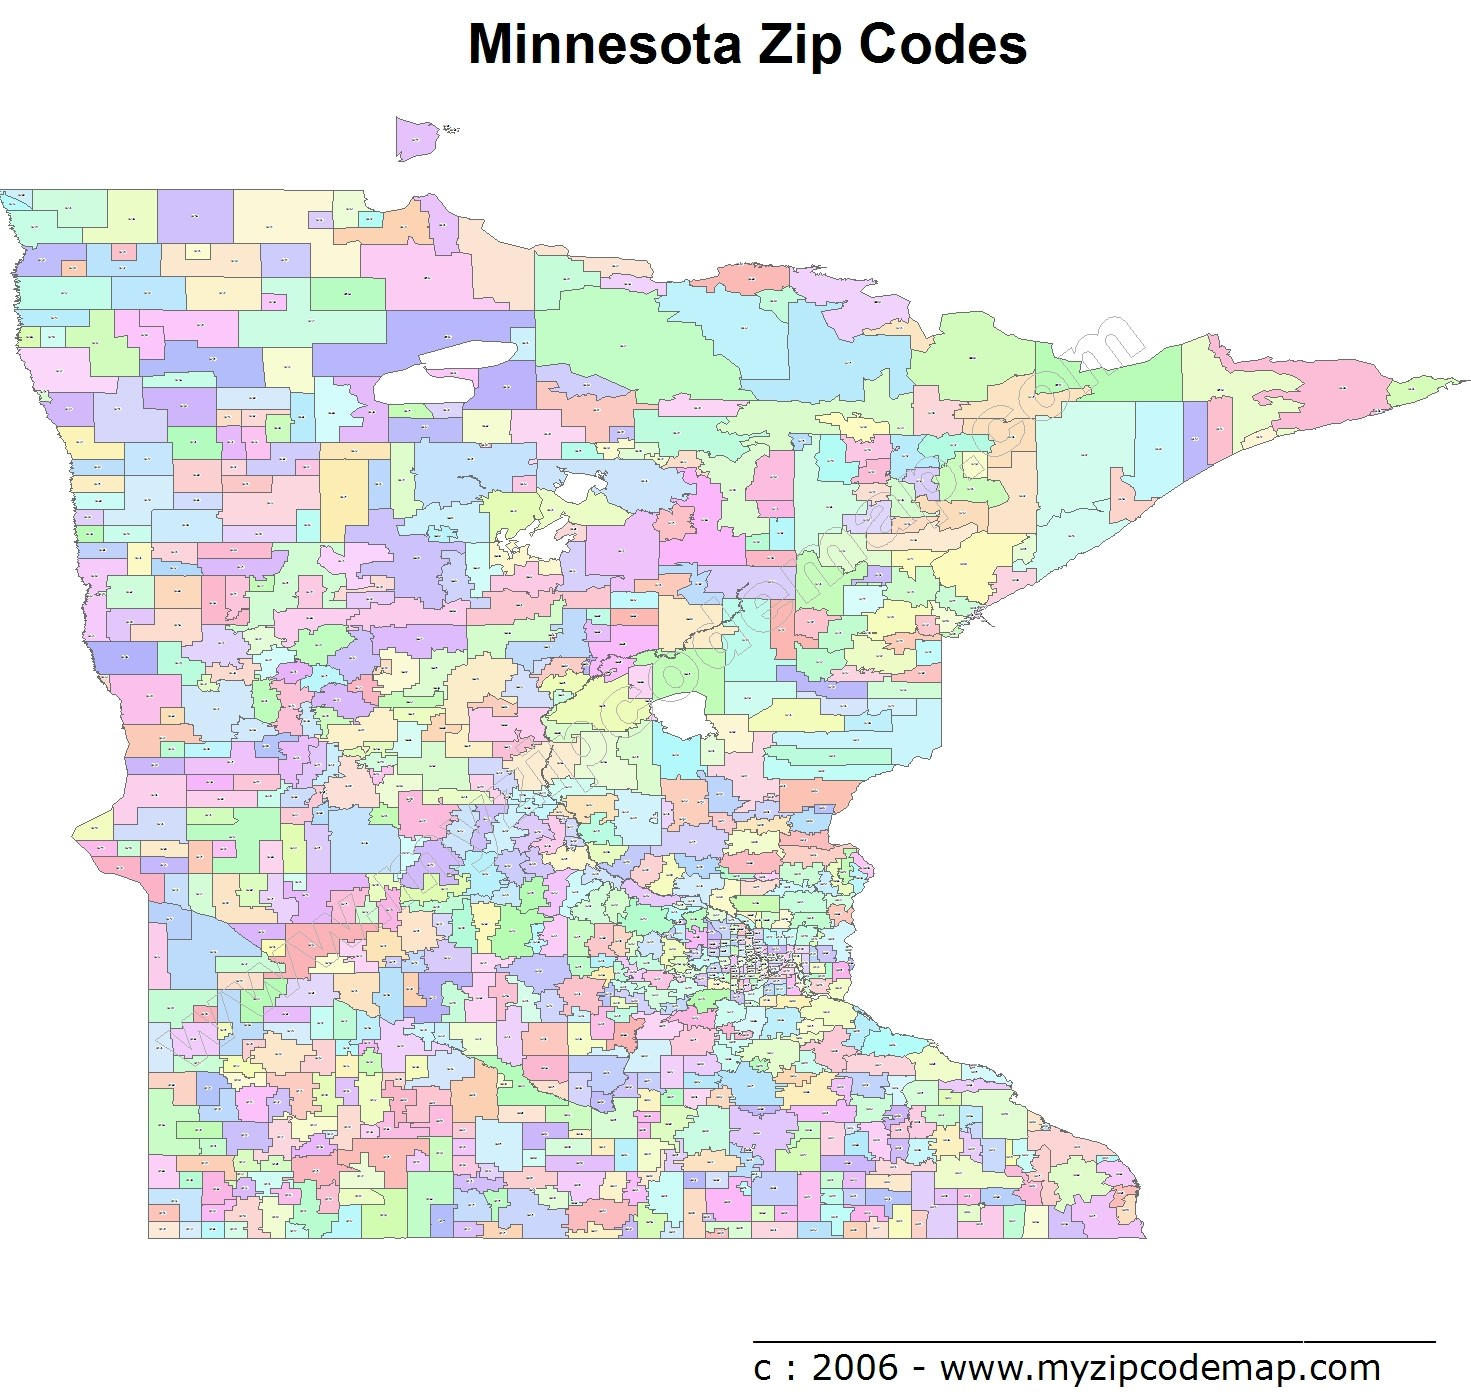 Minnesota Zip Code Maps - Free Minnesota Zip Code Maps on deer park tx zip codes map, brooklyn park mn map, mn elevation map, mn high school map, mn map with towns, minnetonka mn map, mn region map, osseo senior high school map, mn zip code lookup, mn atv trail map, zip codes county map, mn time zone map, mn on us map, minnesota mls listings by map, mn distance map, mn county map, national mls listing map, mn township map, burnsville mn map, lake carlton county minnesota map,